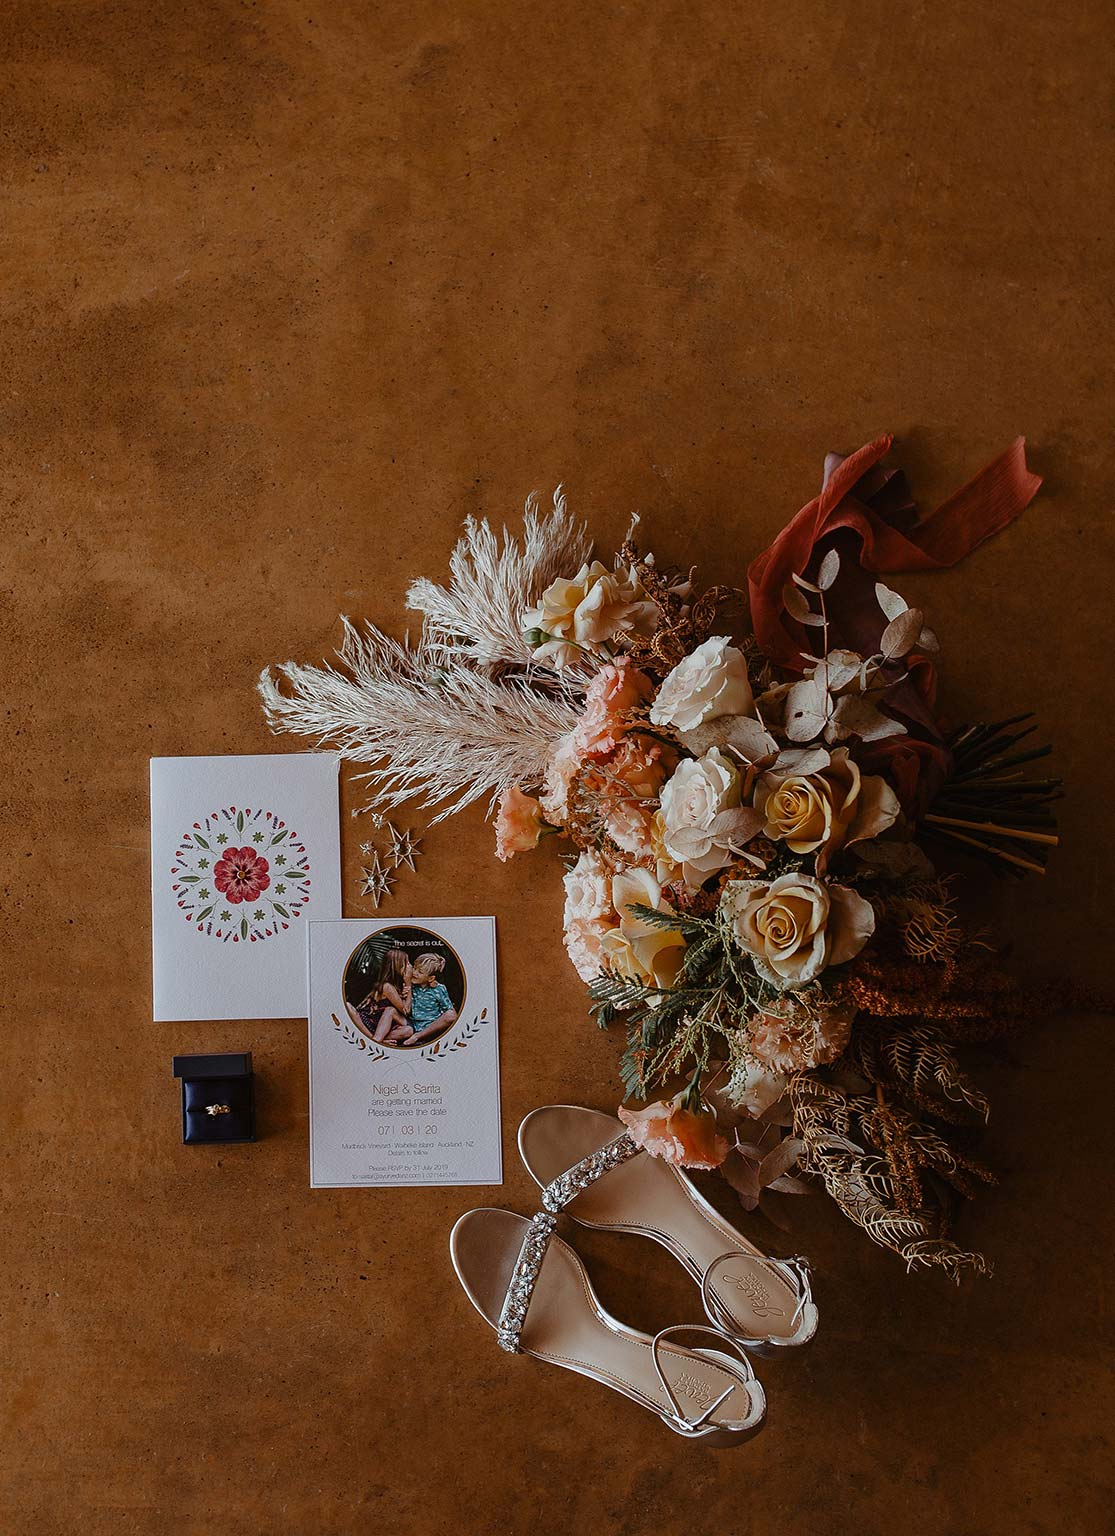 Vinka Design Features Real Weddings - wedding flowers, invitation, bridal shoes and ring